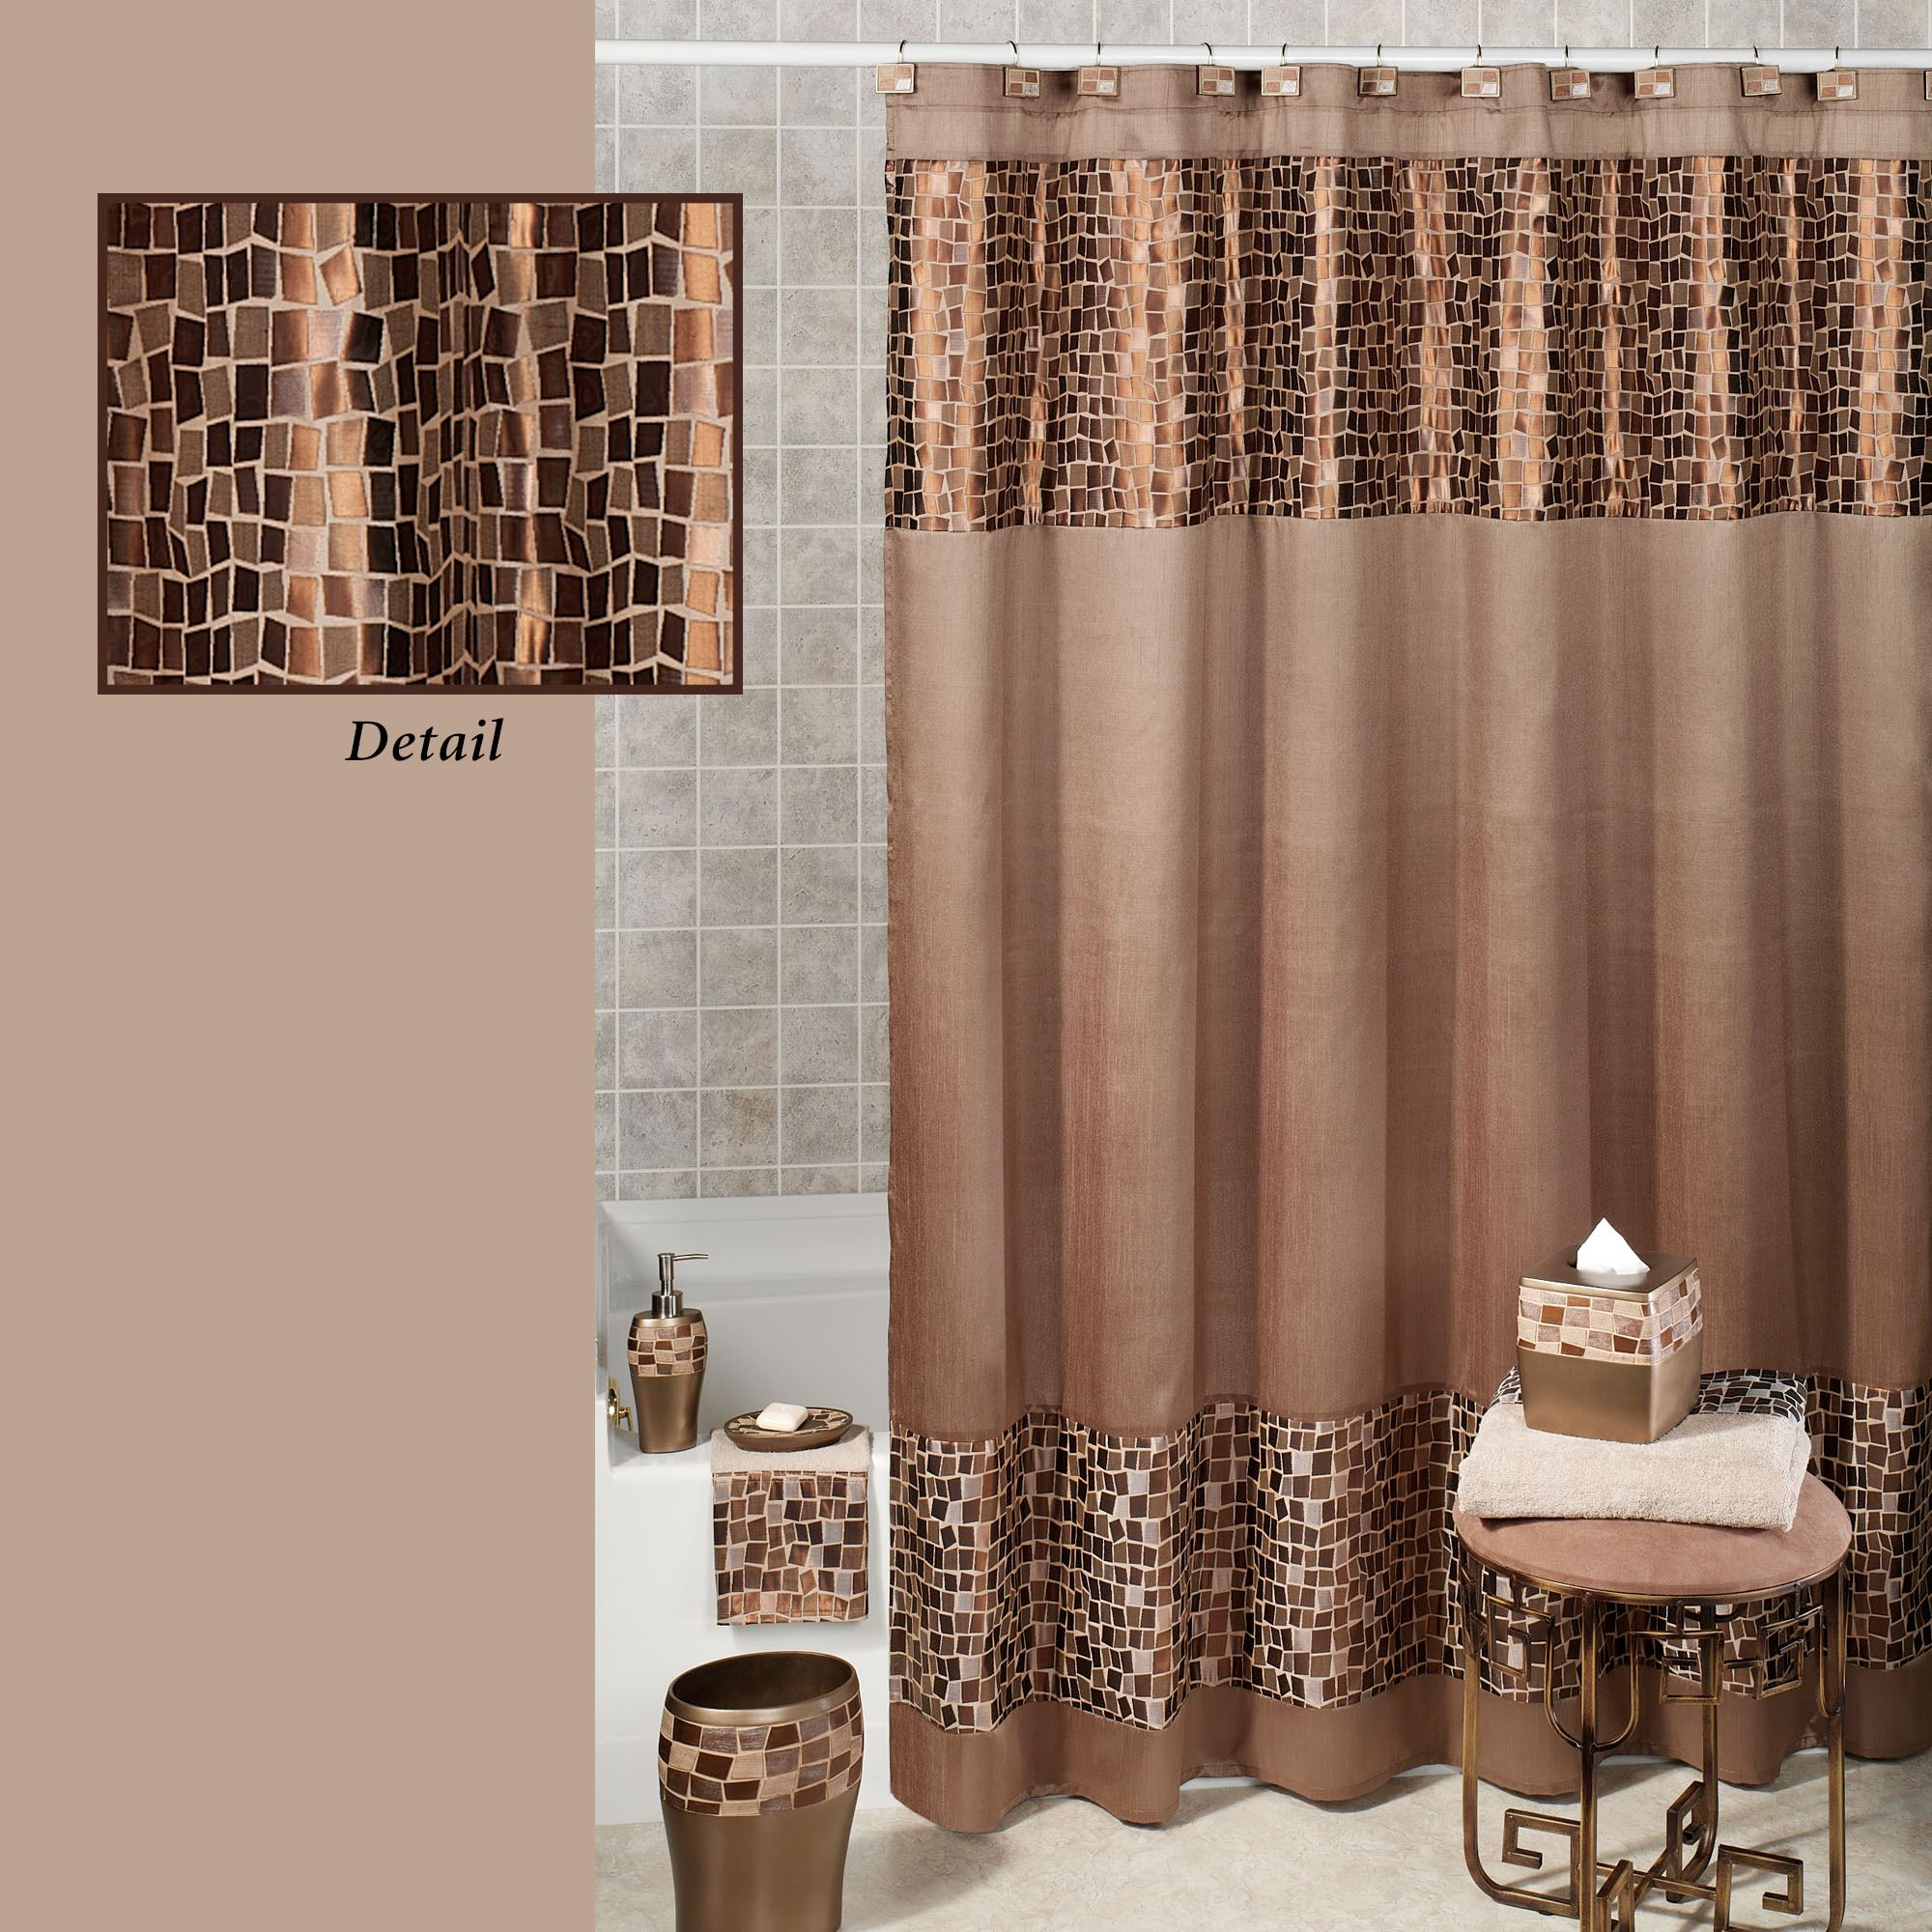 best curtains gratograt southwestern home garden shower photos of bath unique curtain